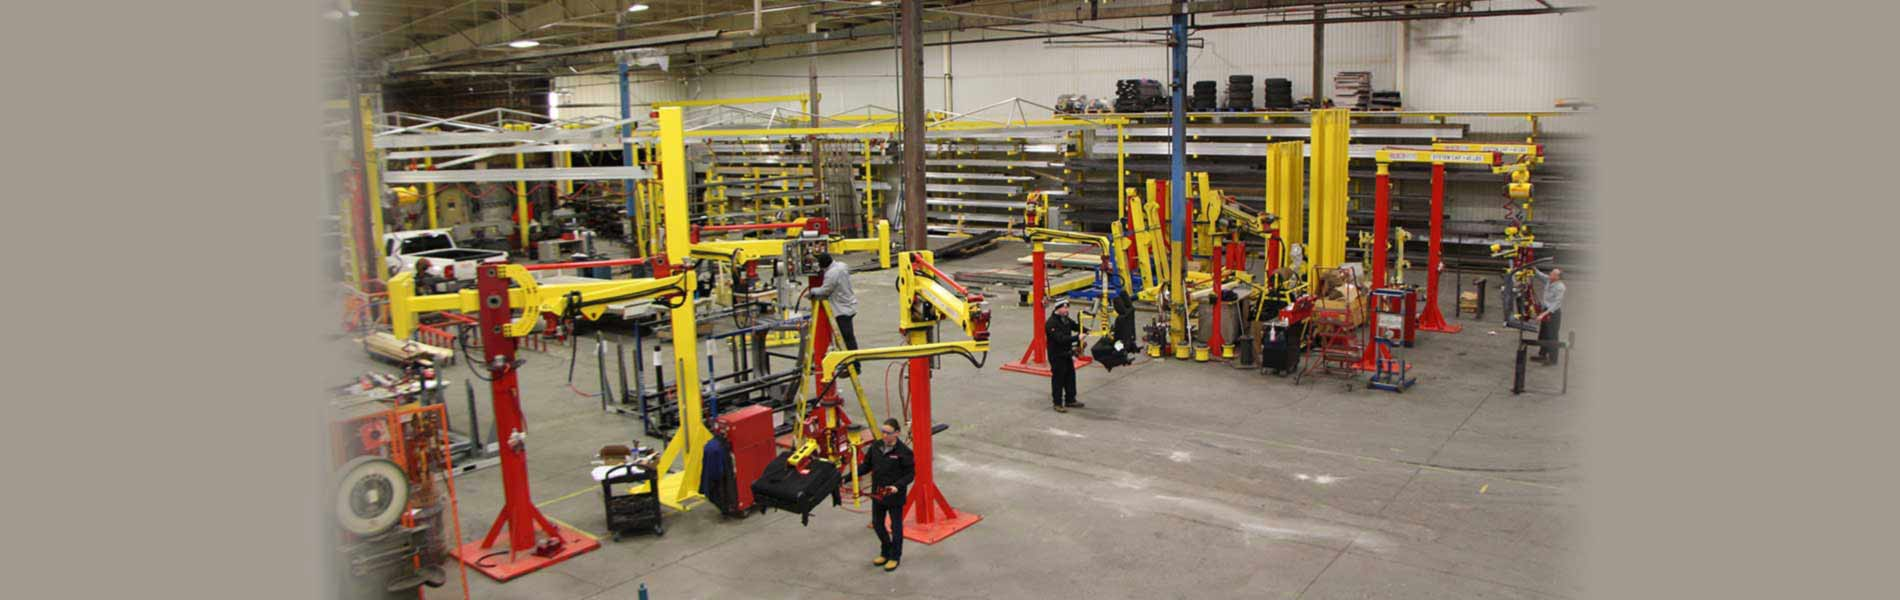 Industrial Manipulators designed & manufactured in the US by Lifting Systems Inc.